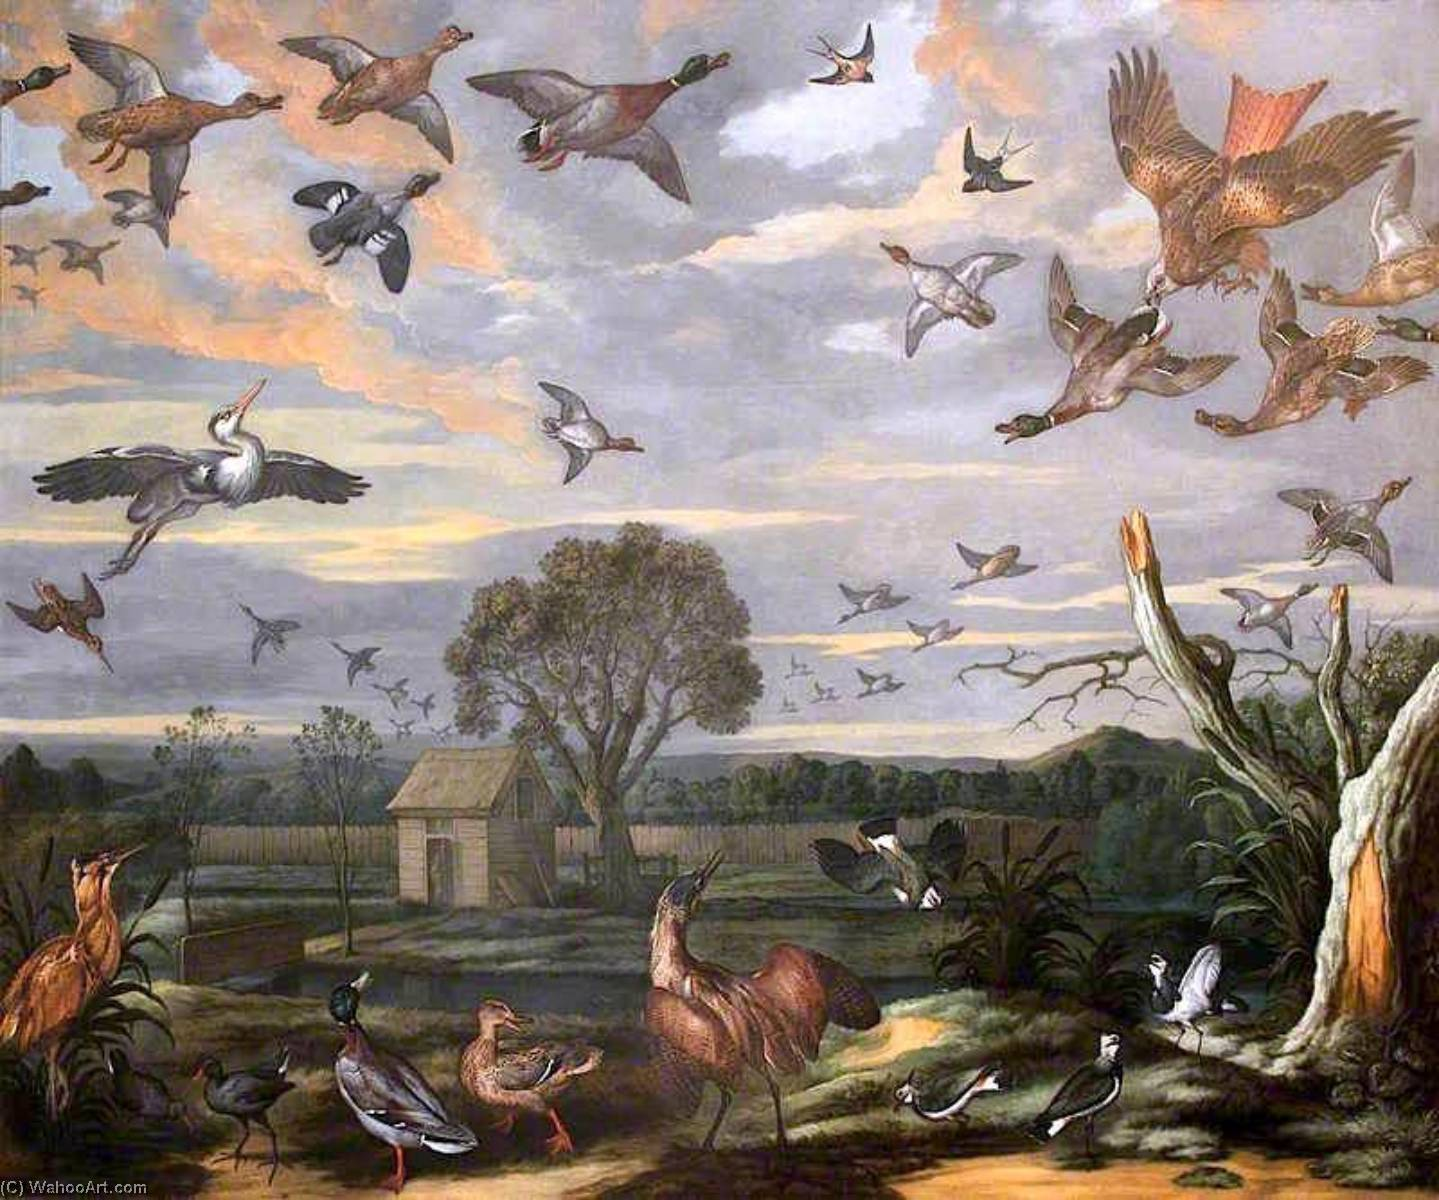 Landscape with Birds and a Duck Decoy, 1779 by Francis Barlow (1624-1704, United Kingdom) | Painting Copy | WahooArt.com